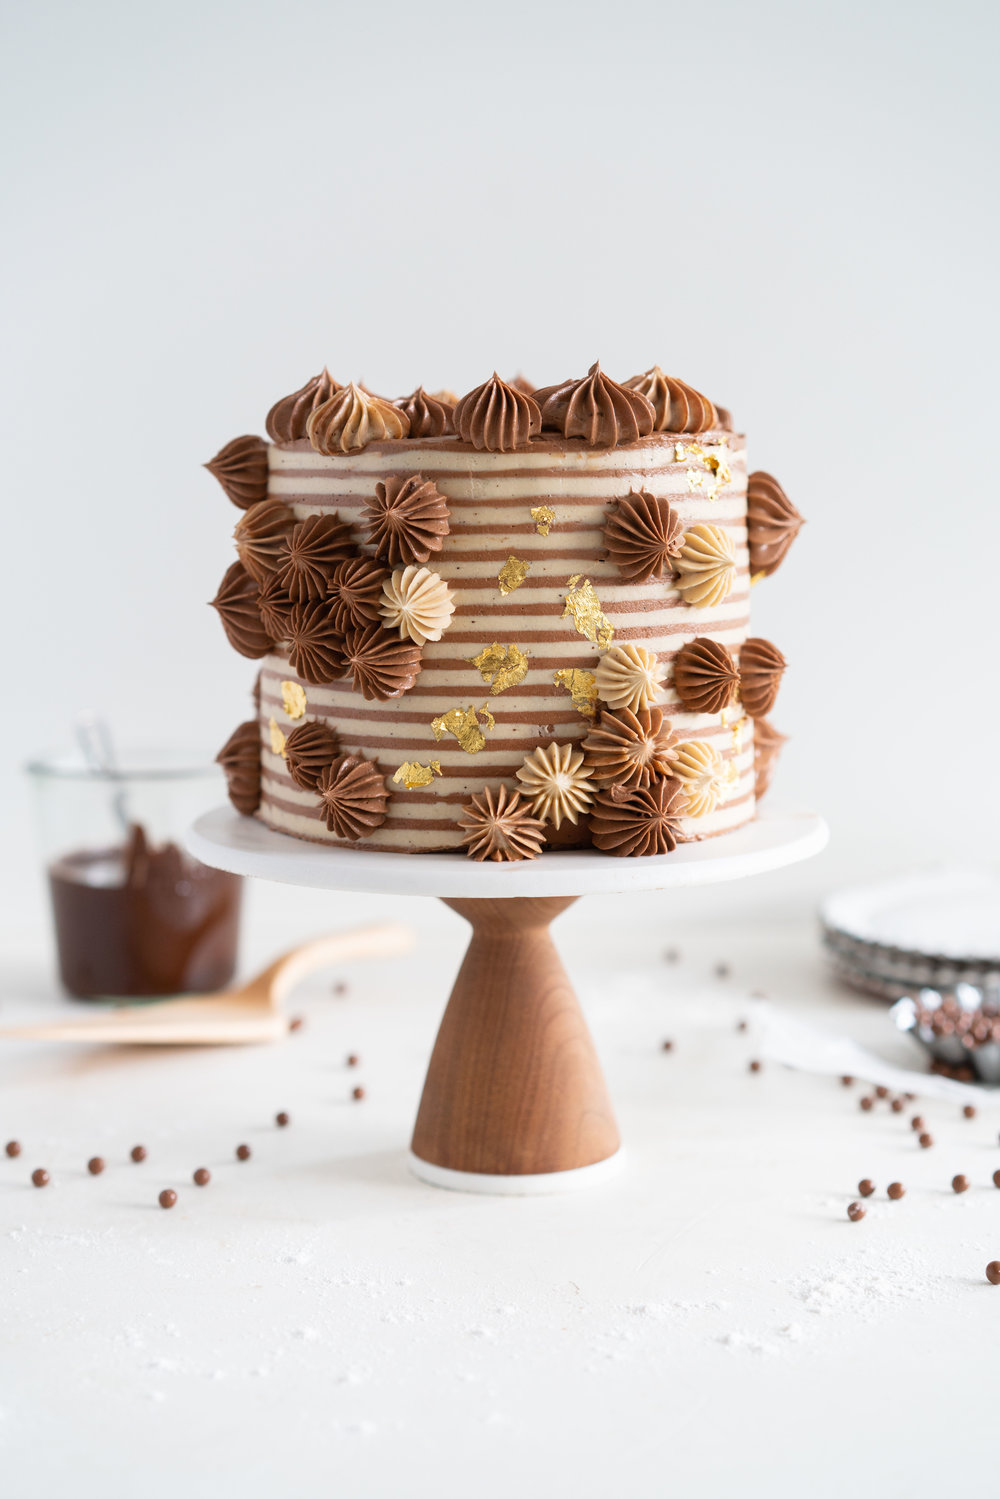 Chocolate Brownie Cake with Chocolate Hazelnut filling and Mocha German Buttercream - perfectly indulgent.